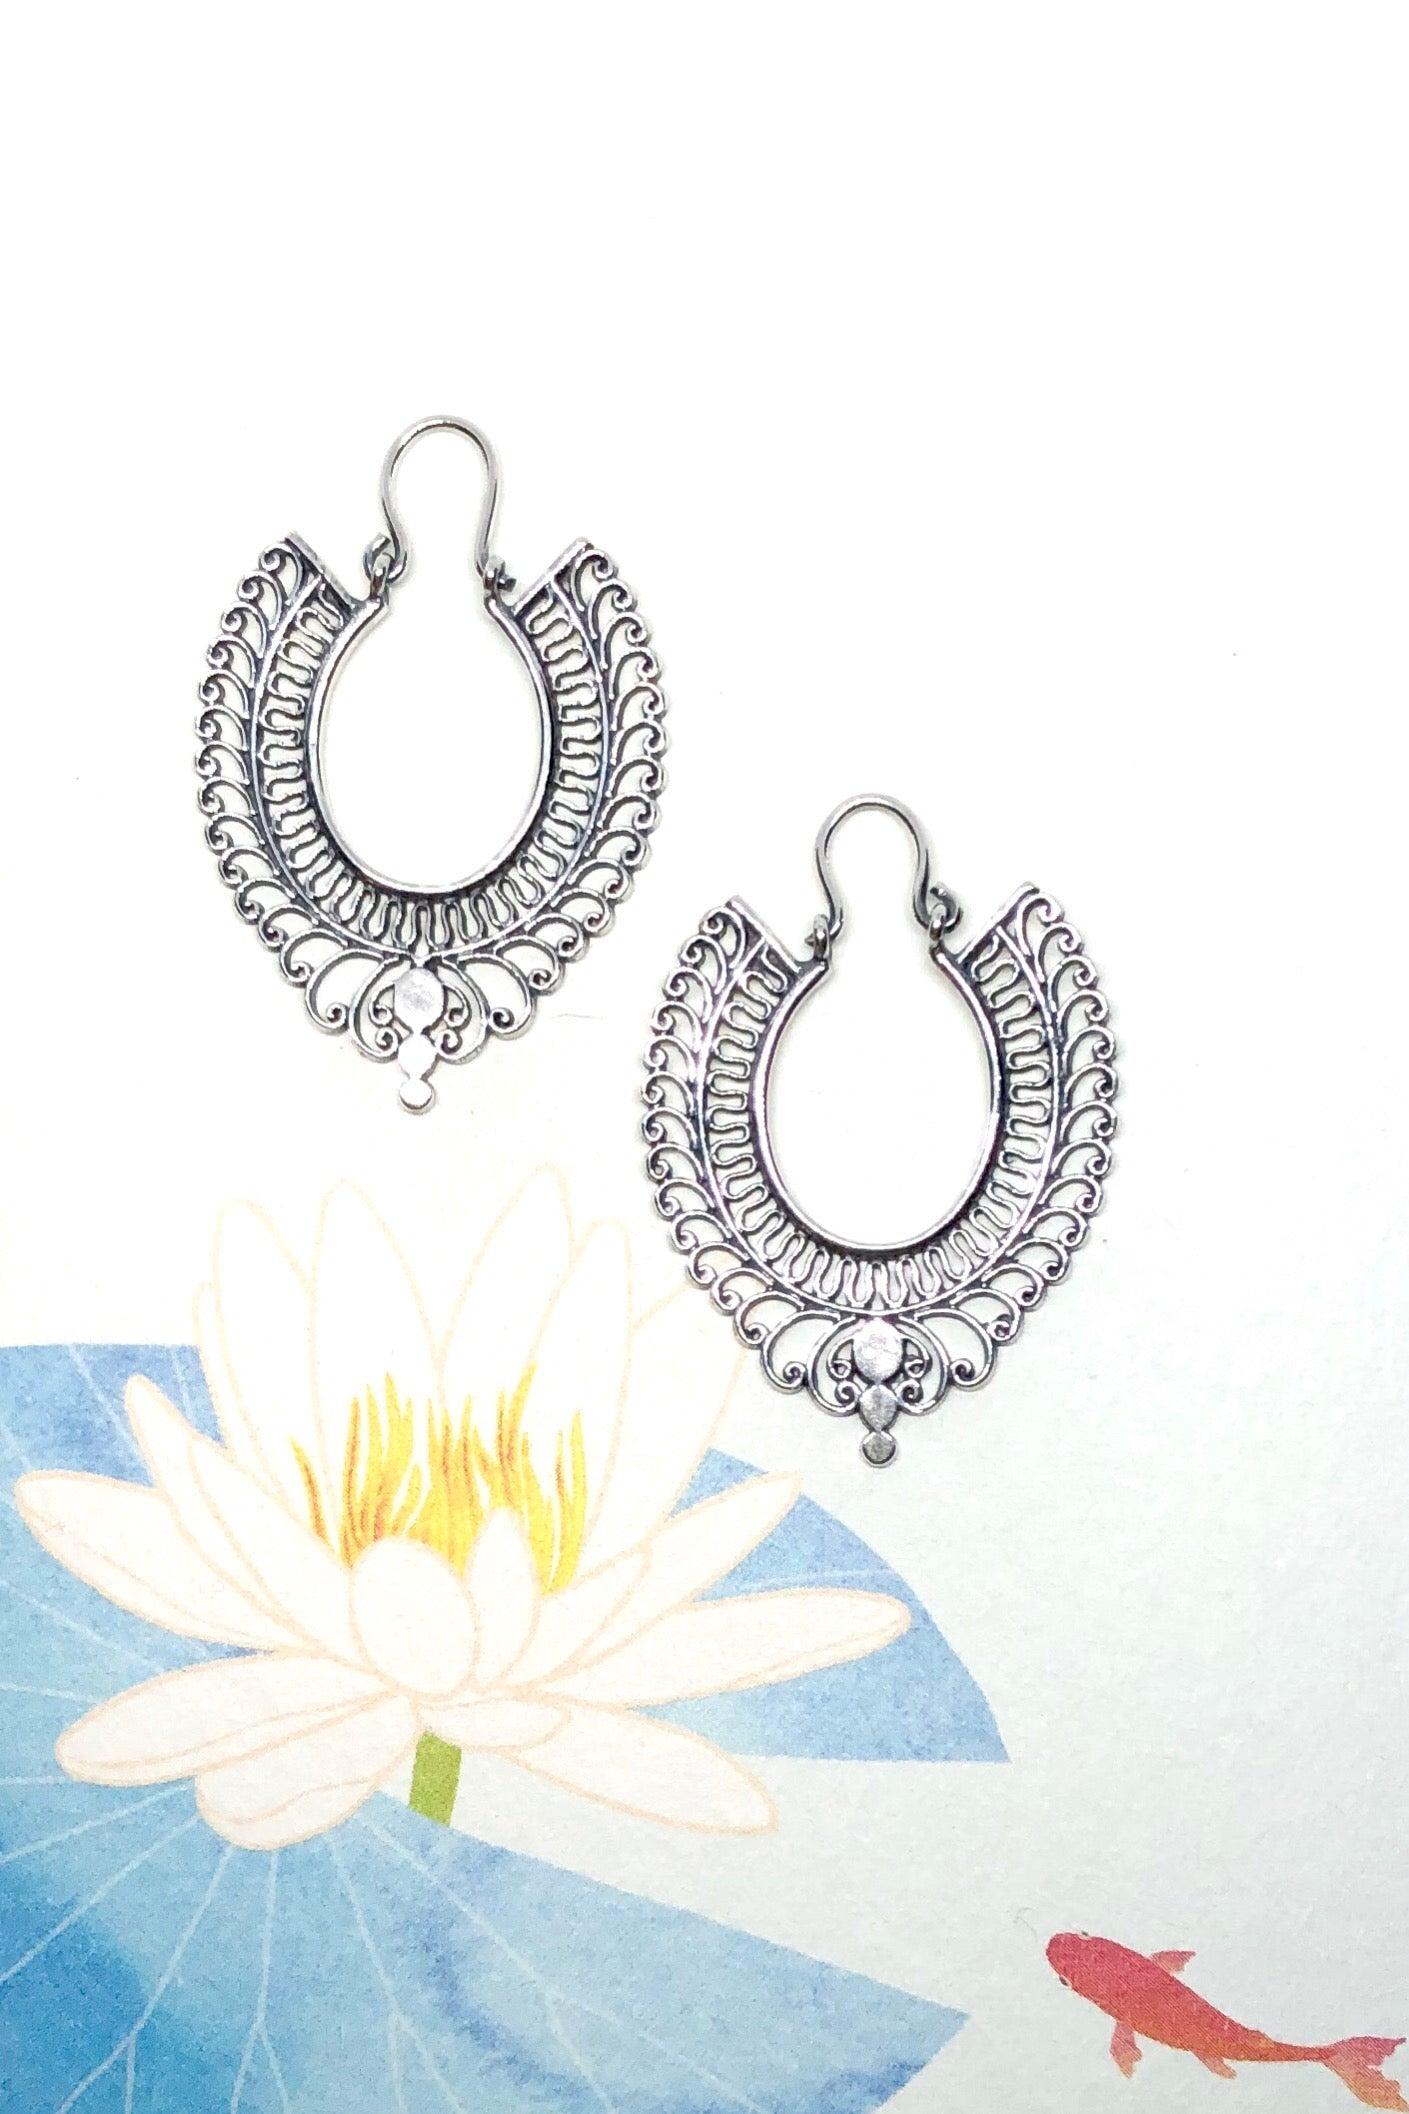 Fall for our exotic silver hoop, the Earrings Cay Peacock Hoop featuring 4 cm in length, 2.8 cm wide, 925 solid silver.